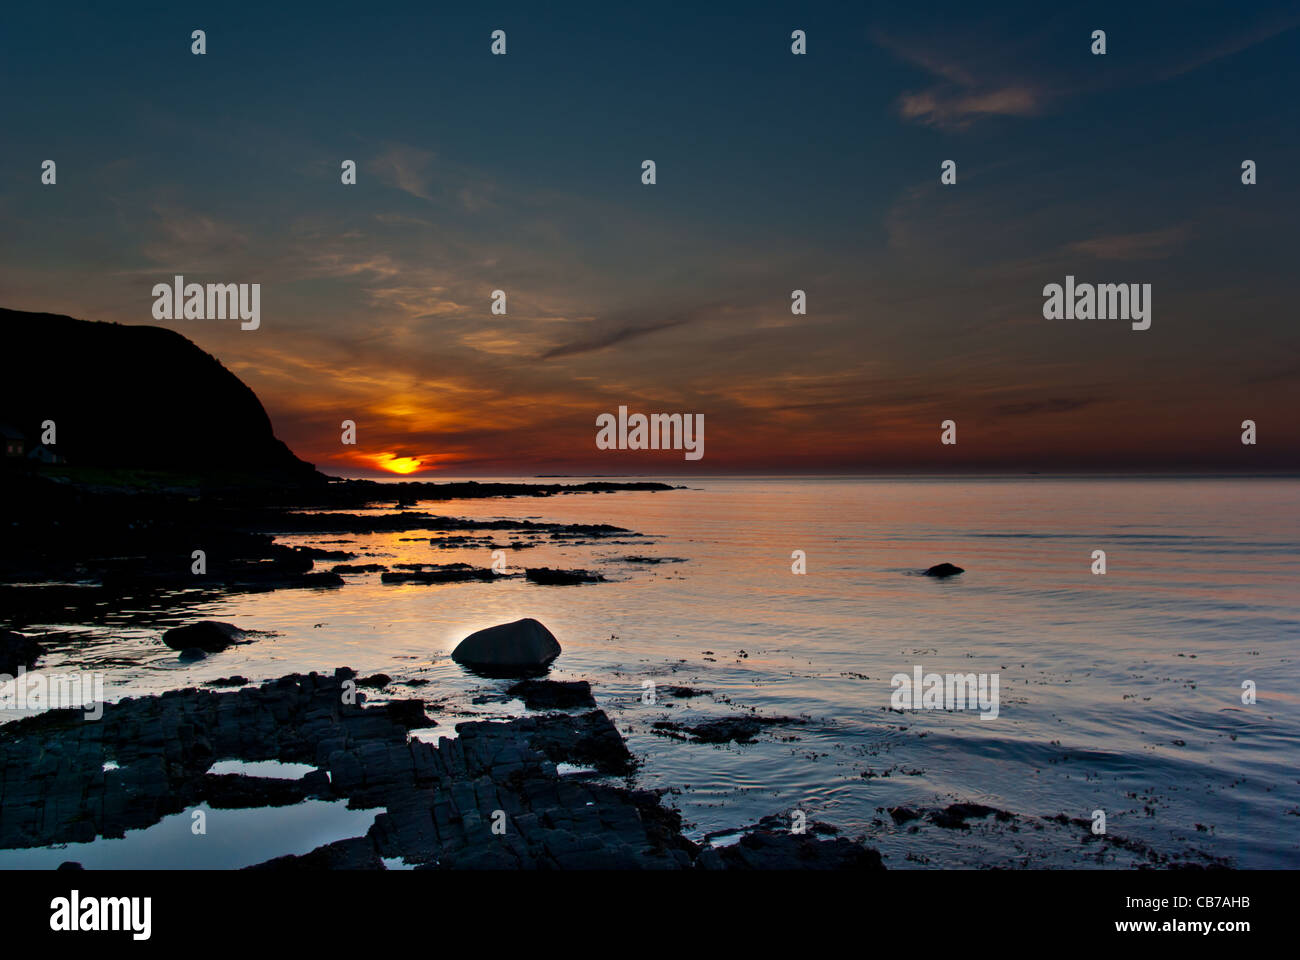 Sunset on the isle in runde - Stock Image